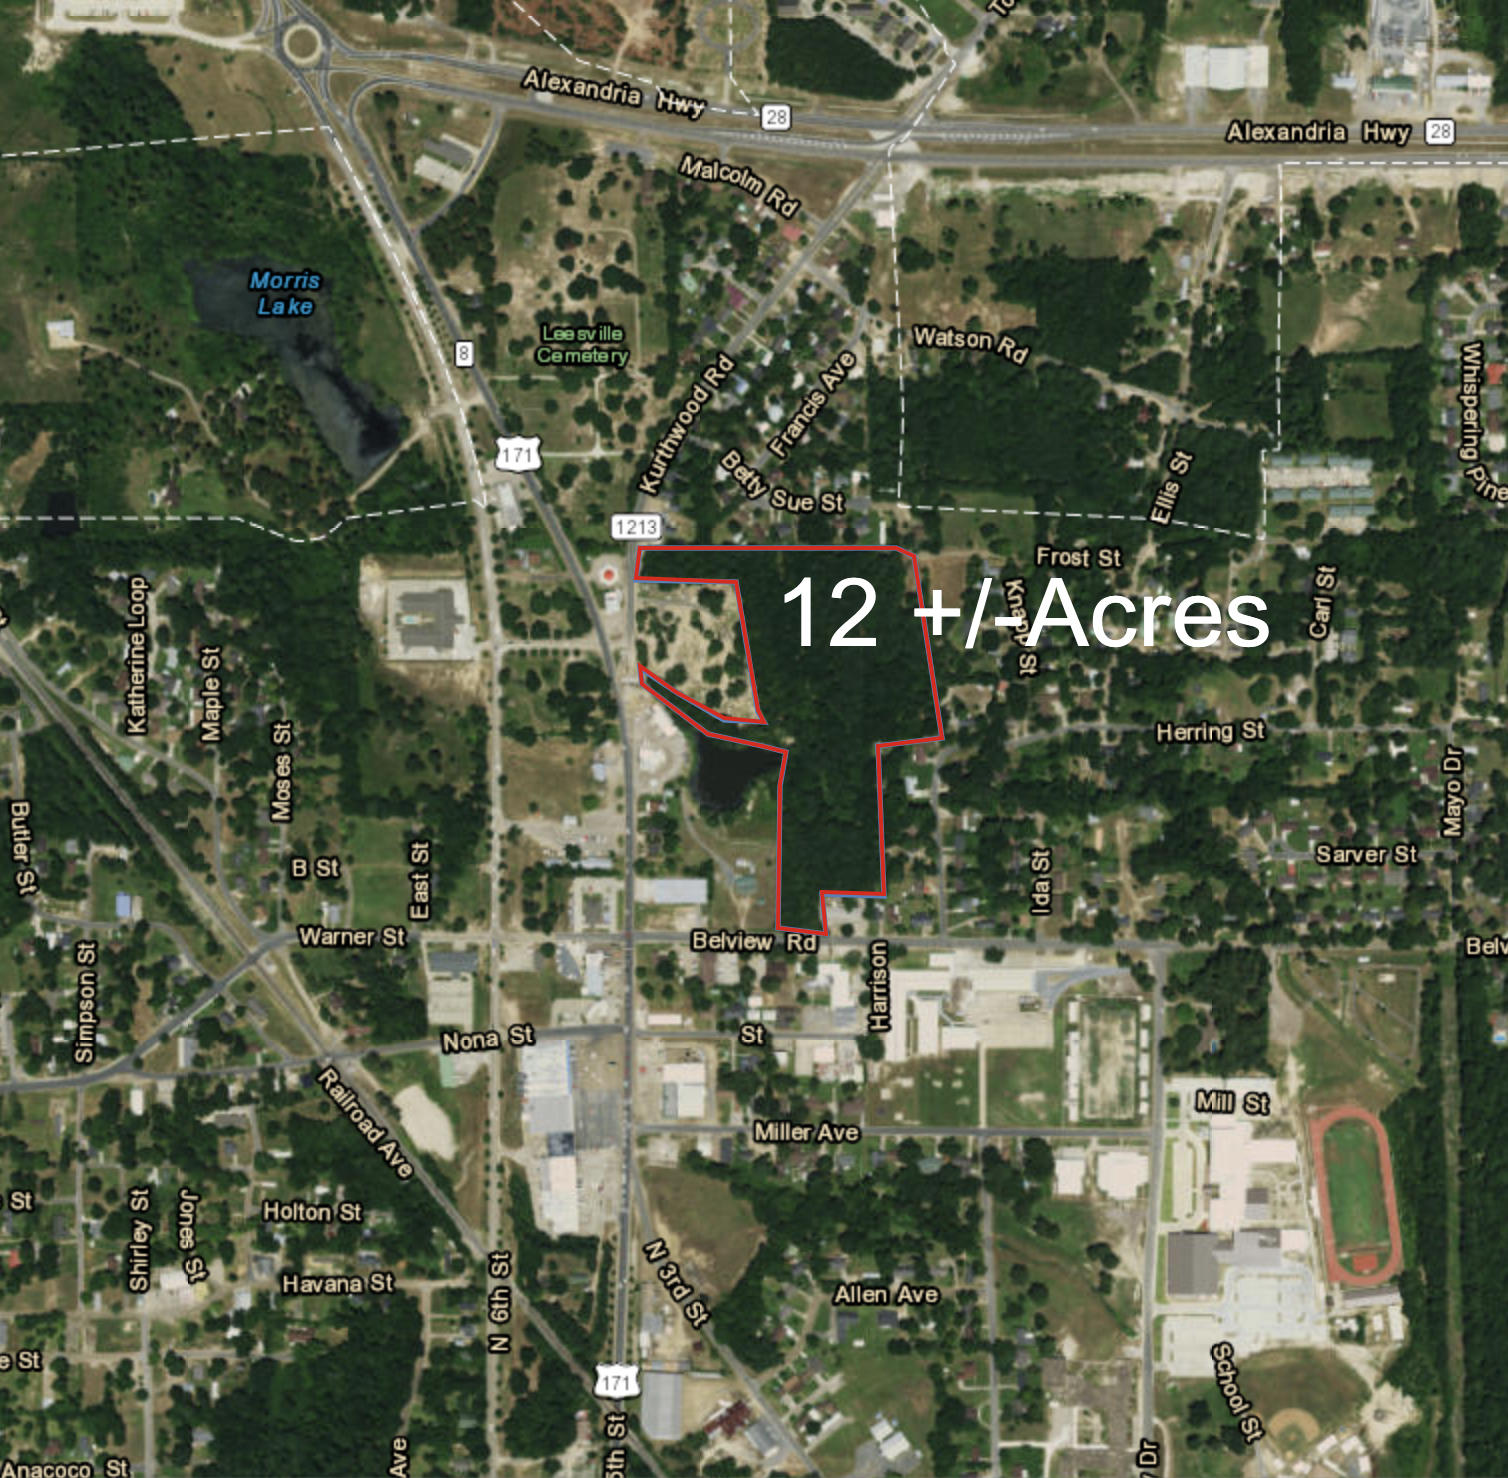 Leesville commercial property for sale, TBD Belview Rd, Leesville LA - $399,900